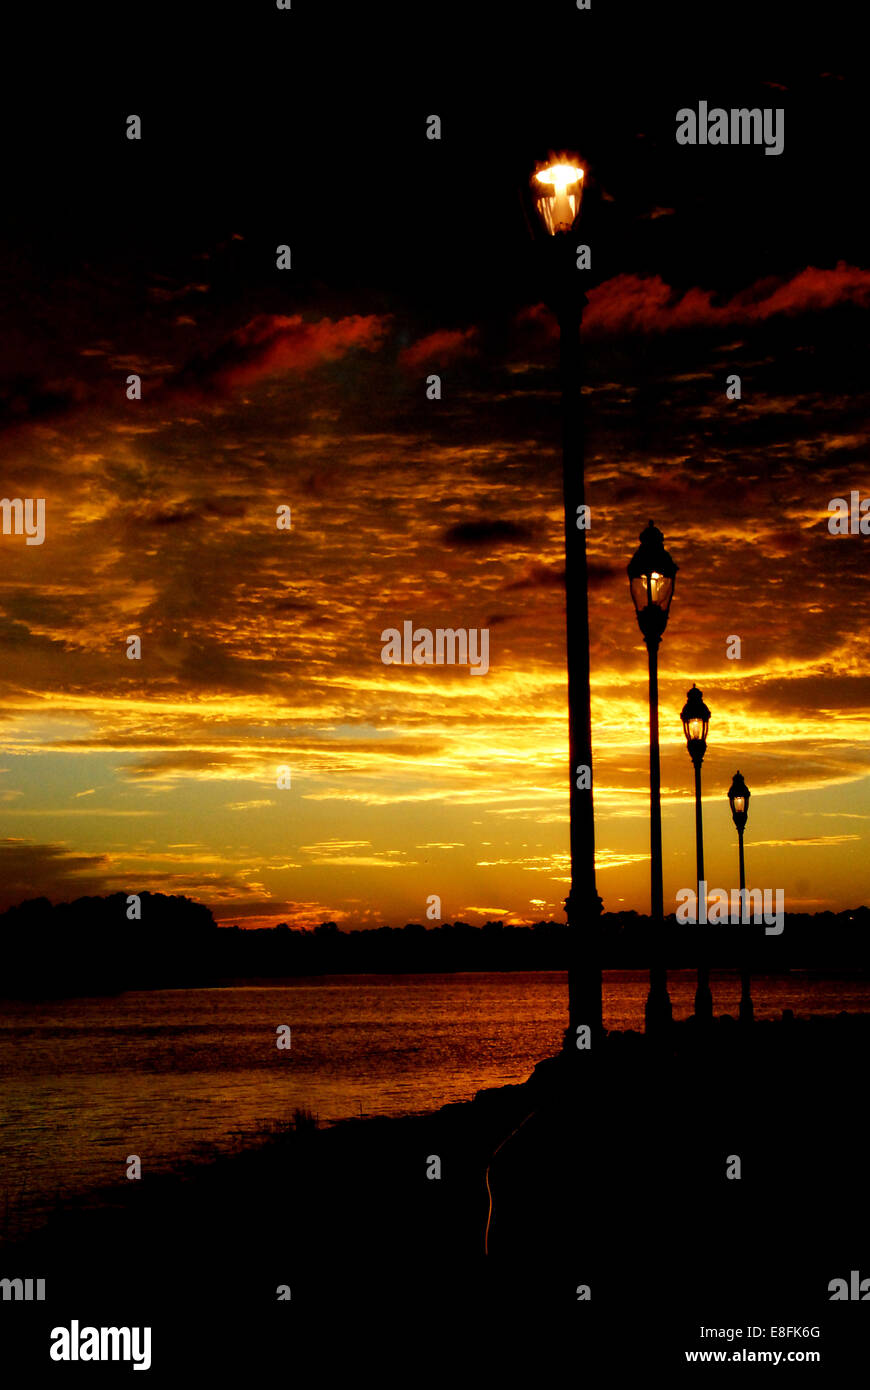 USA, Floride, Orange County, Orlando, le coucher du soleil le long de marche Photo Stock